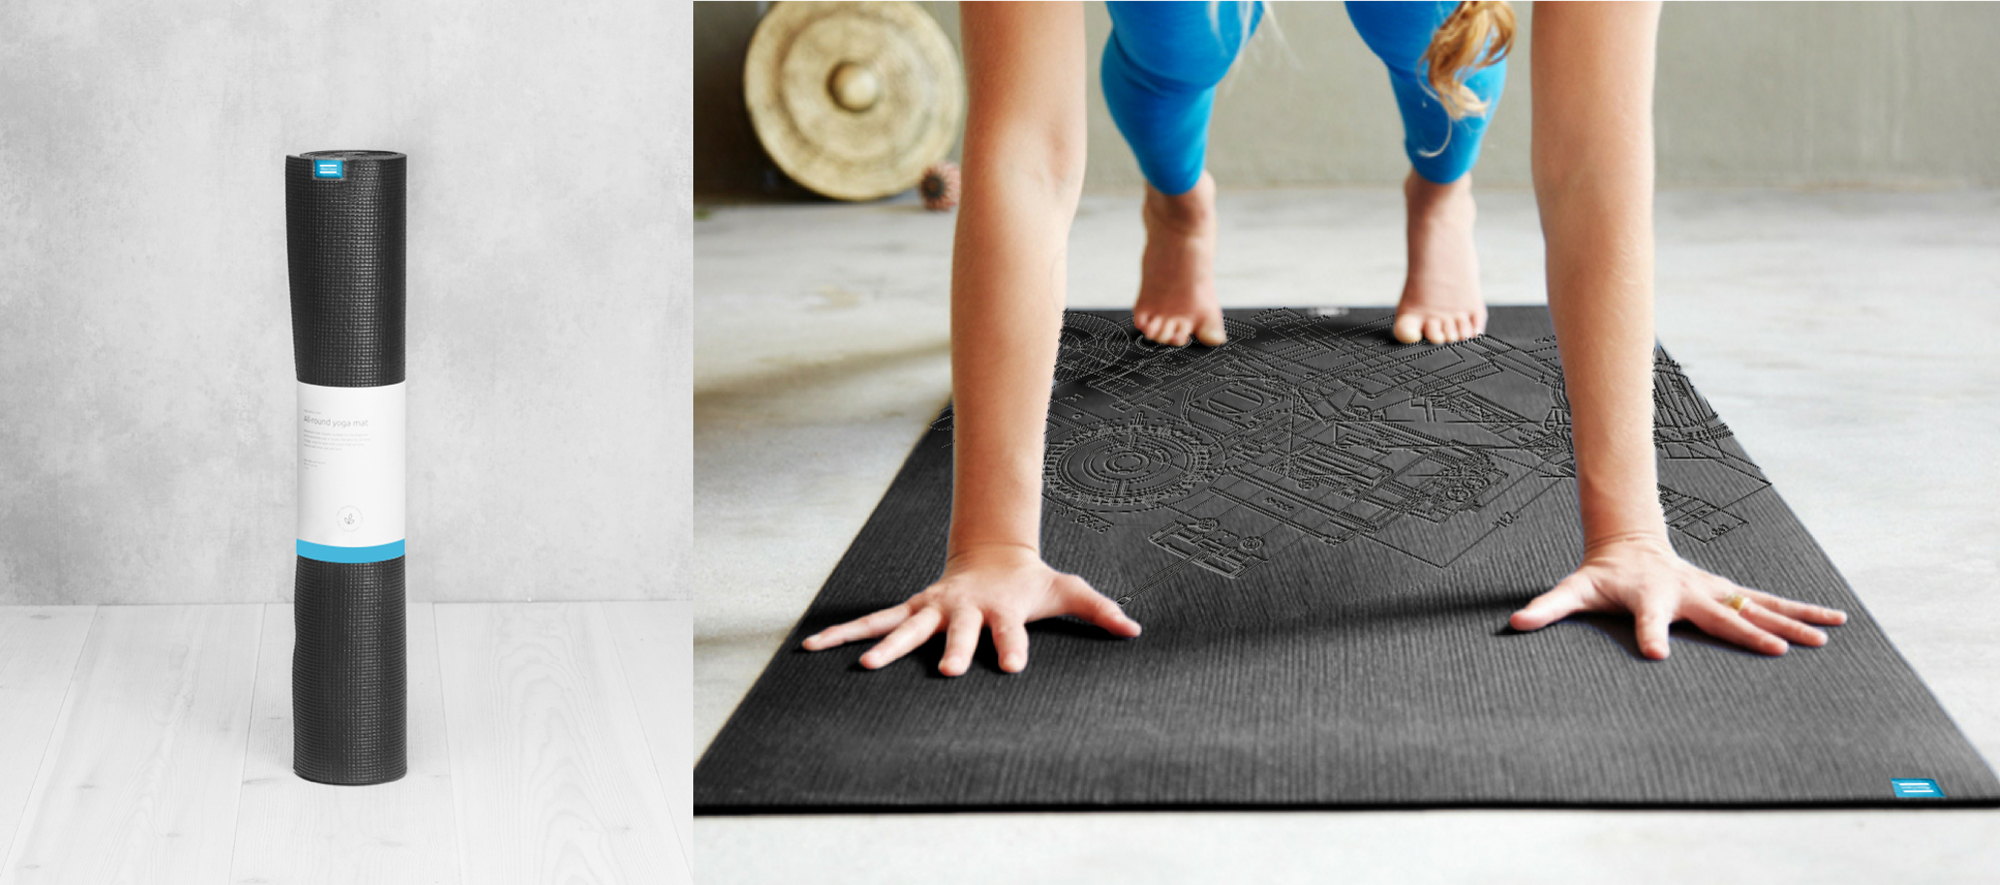 Enjoy your asanas with a yoga mat with nice look and feel. The mat provides you with very good grip on both floor and hands/feet. The Blueprint pattern is debossed into the material on one side.